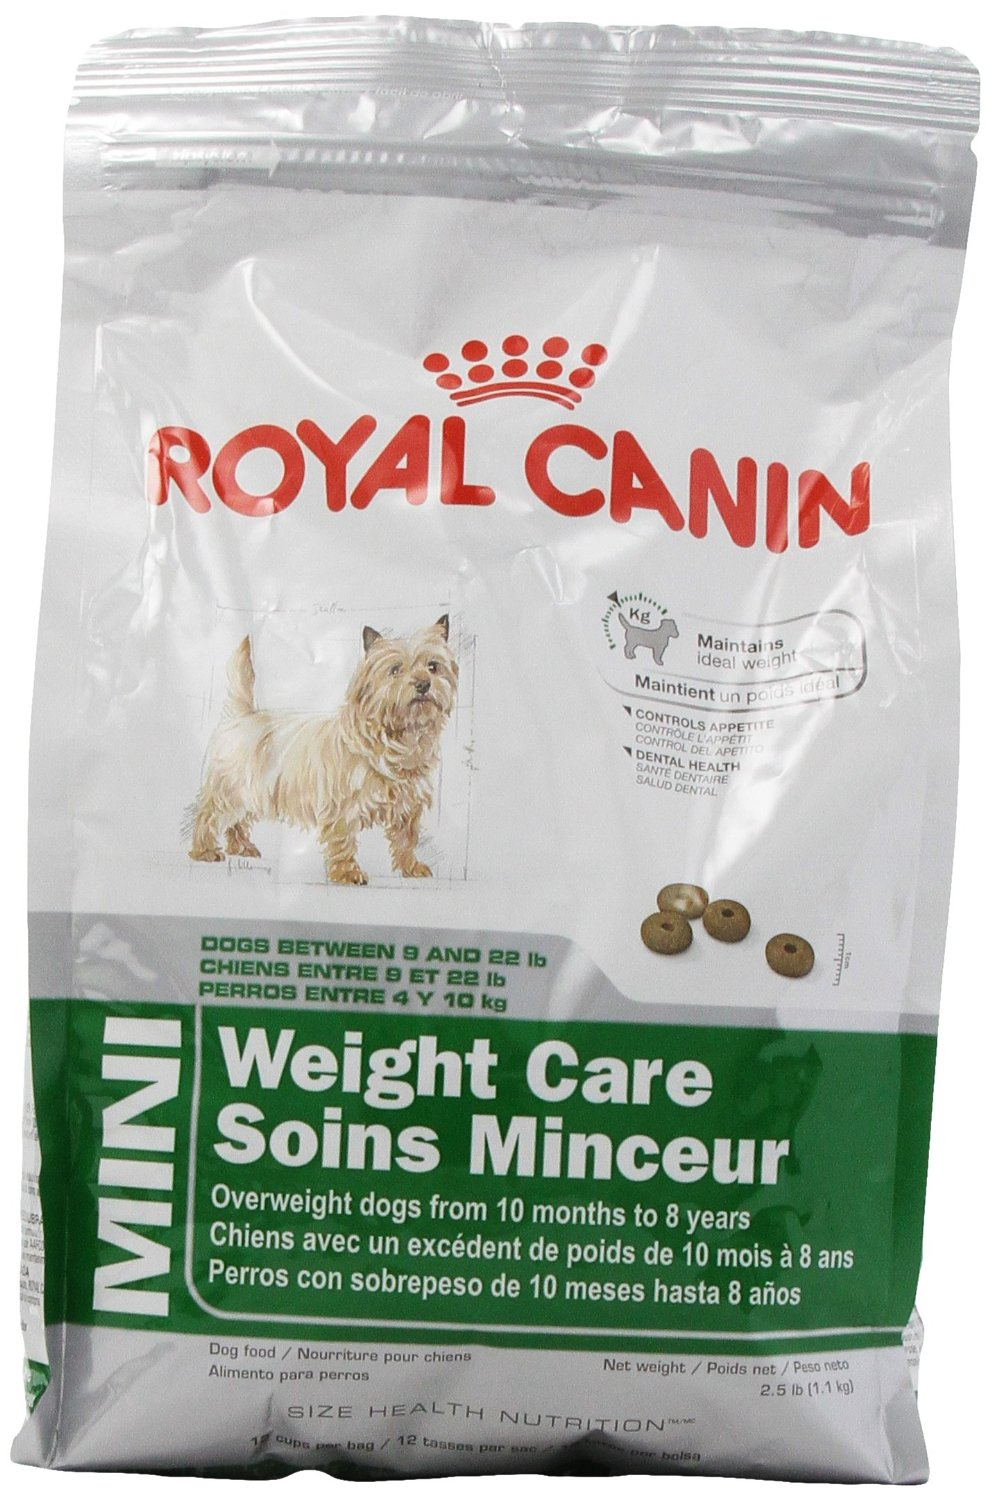 View All Royal Canin Dog Food